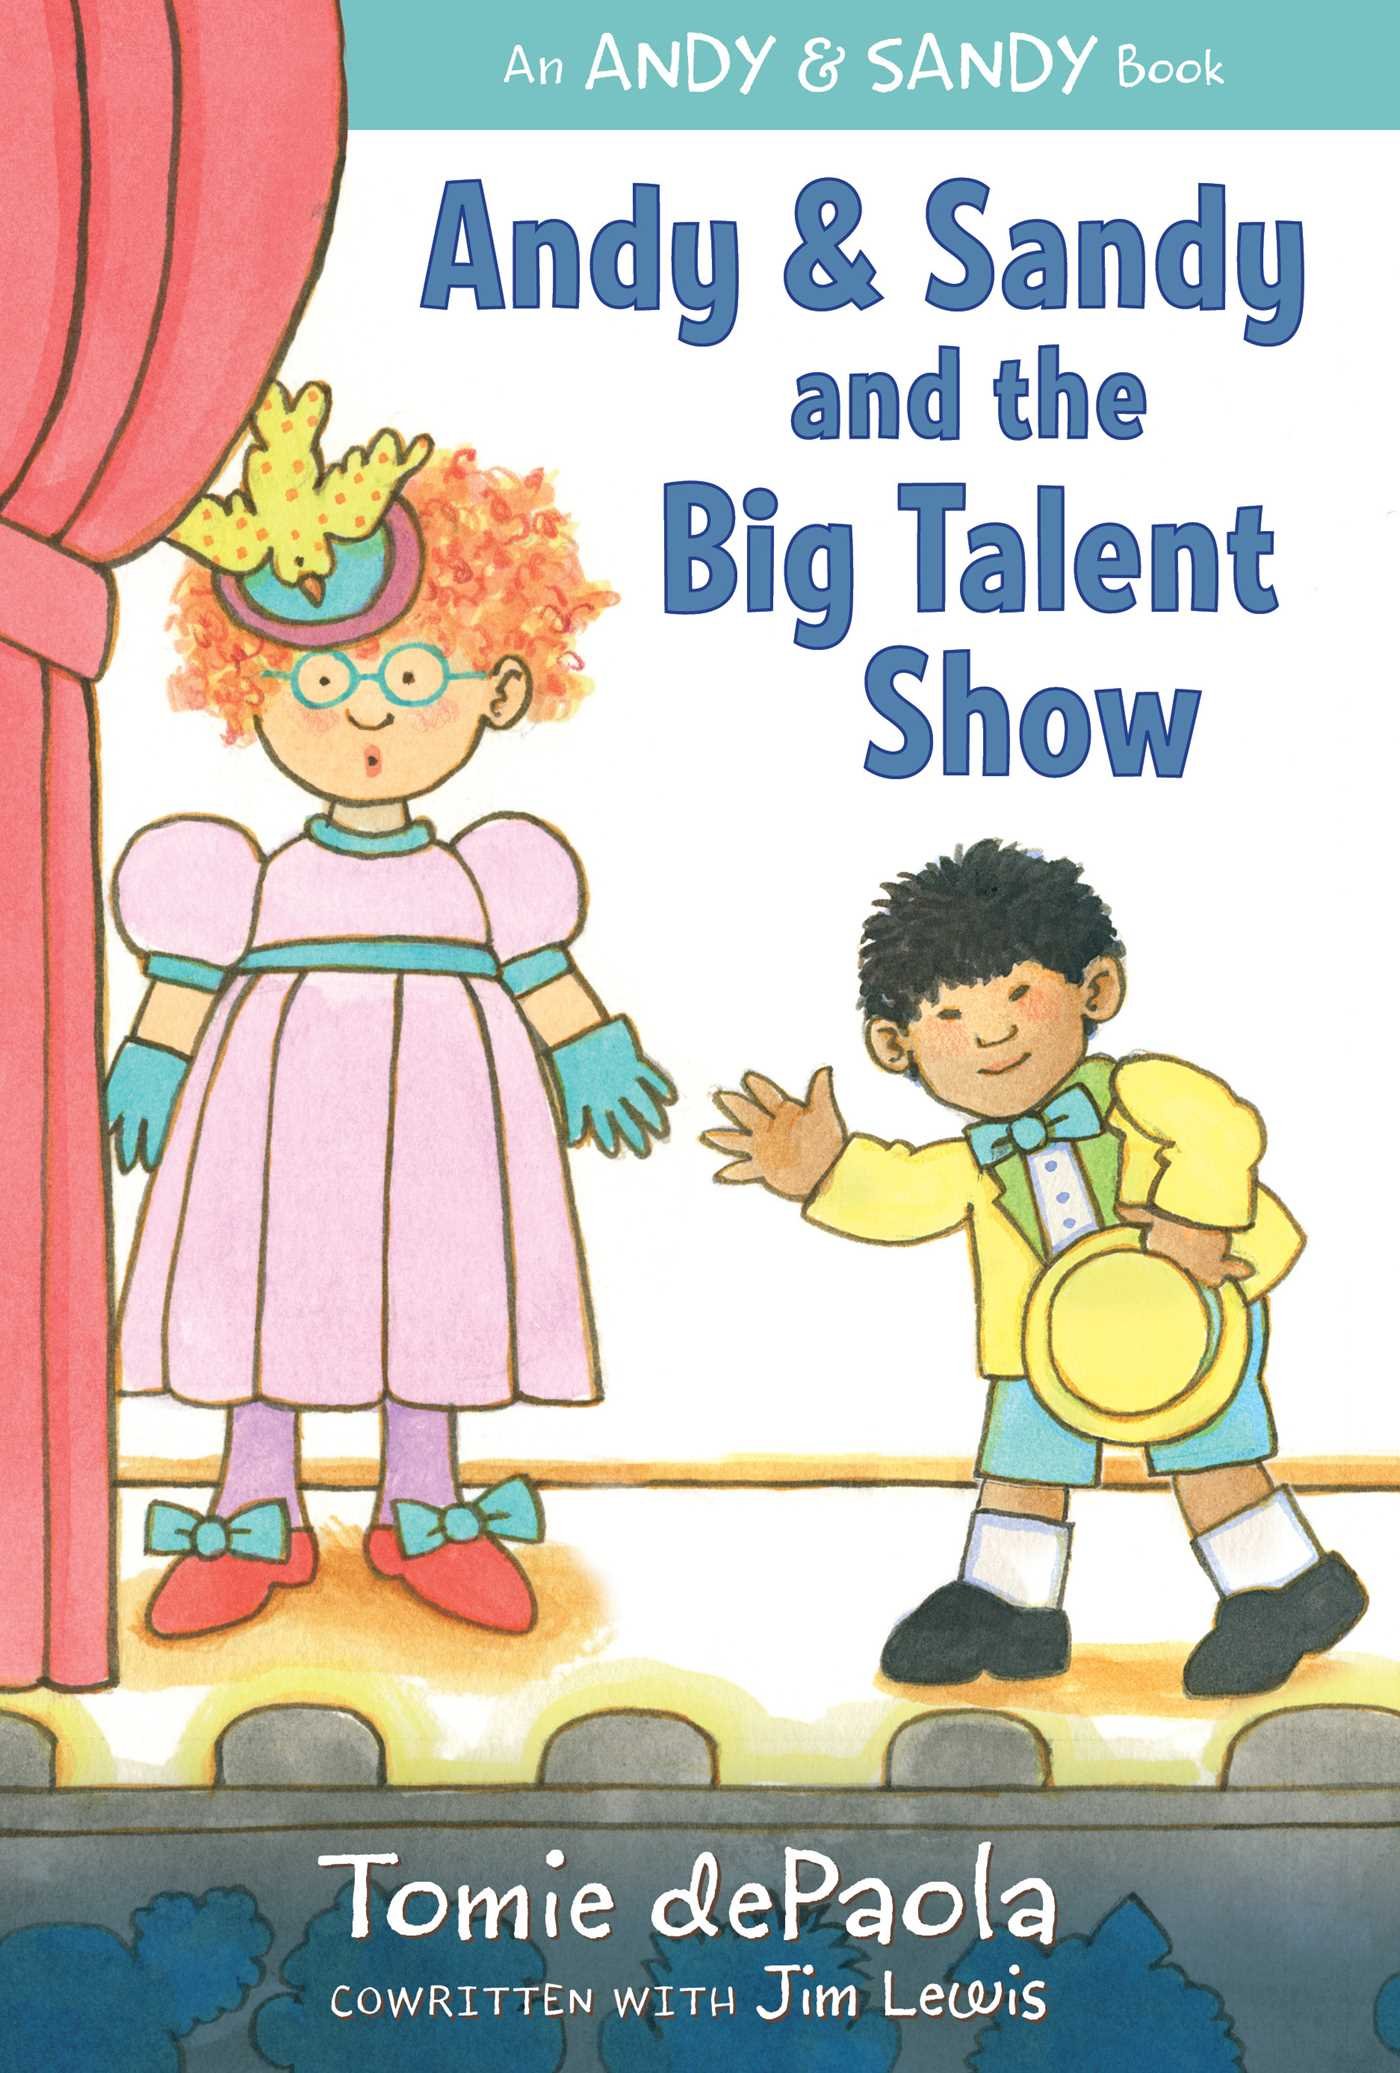 Andy sandy and the big talent show 9781481479479 hr